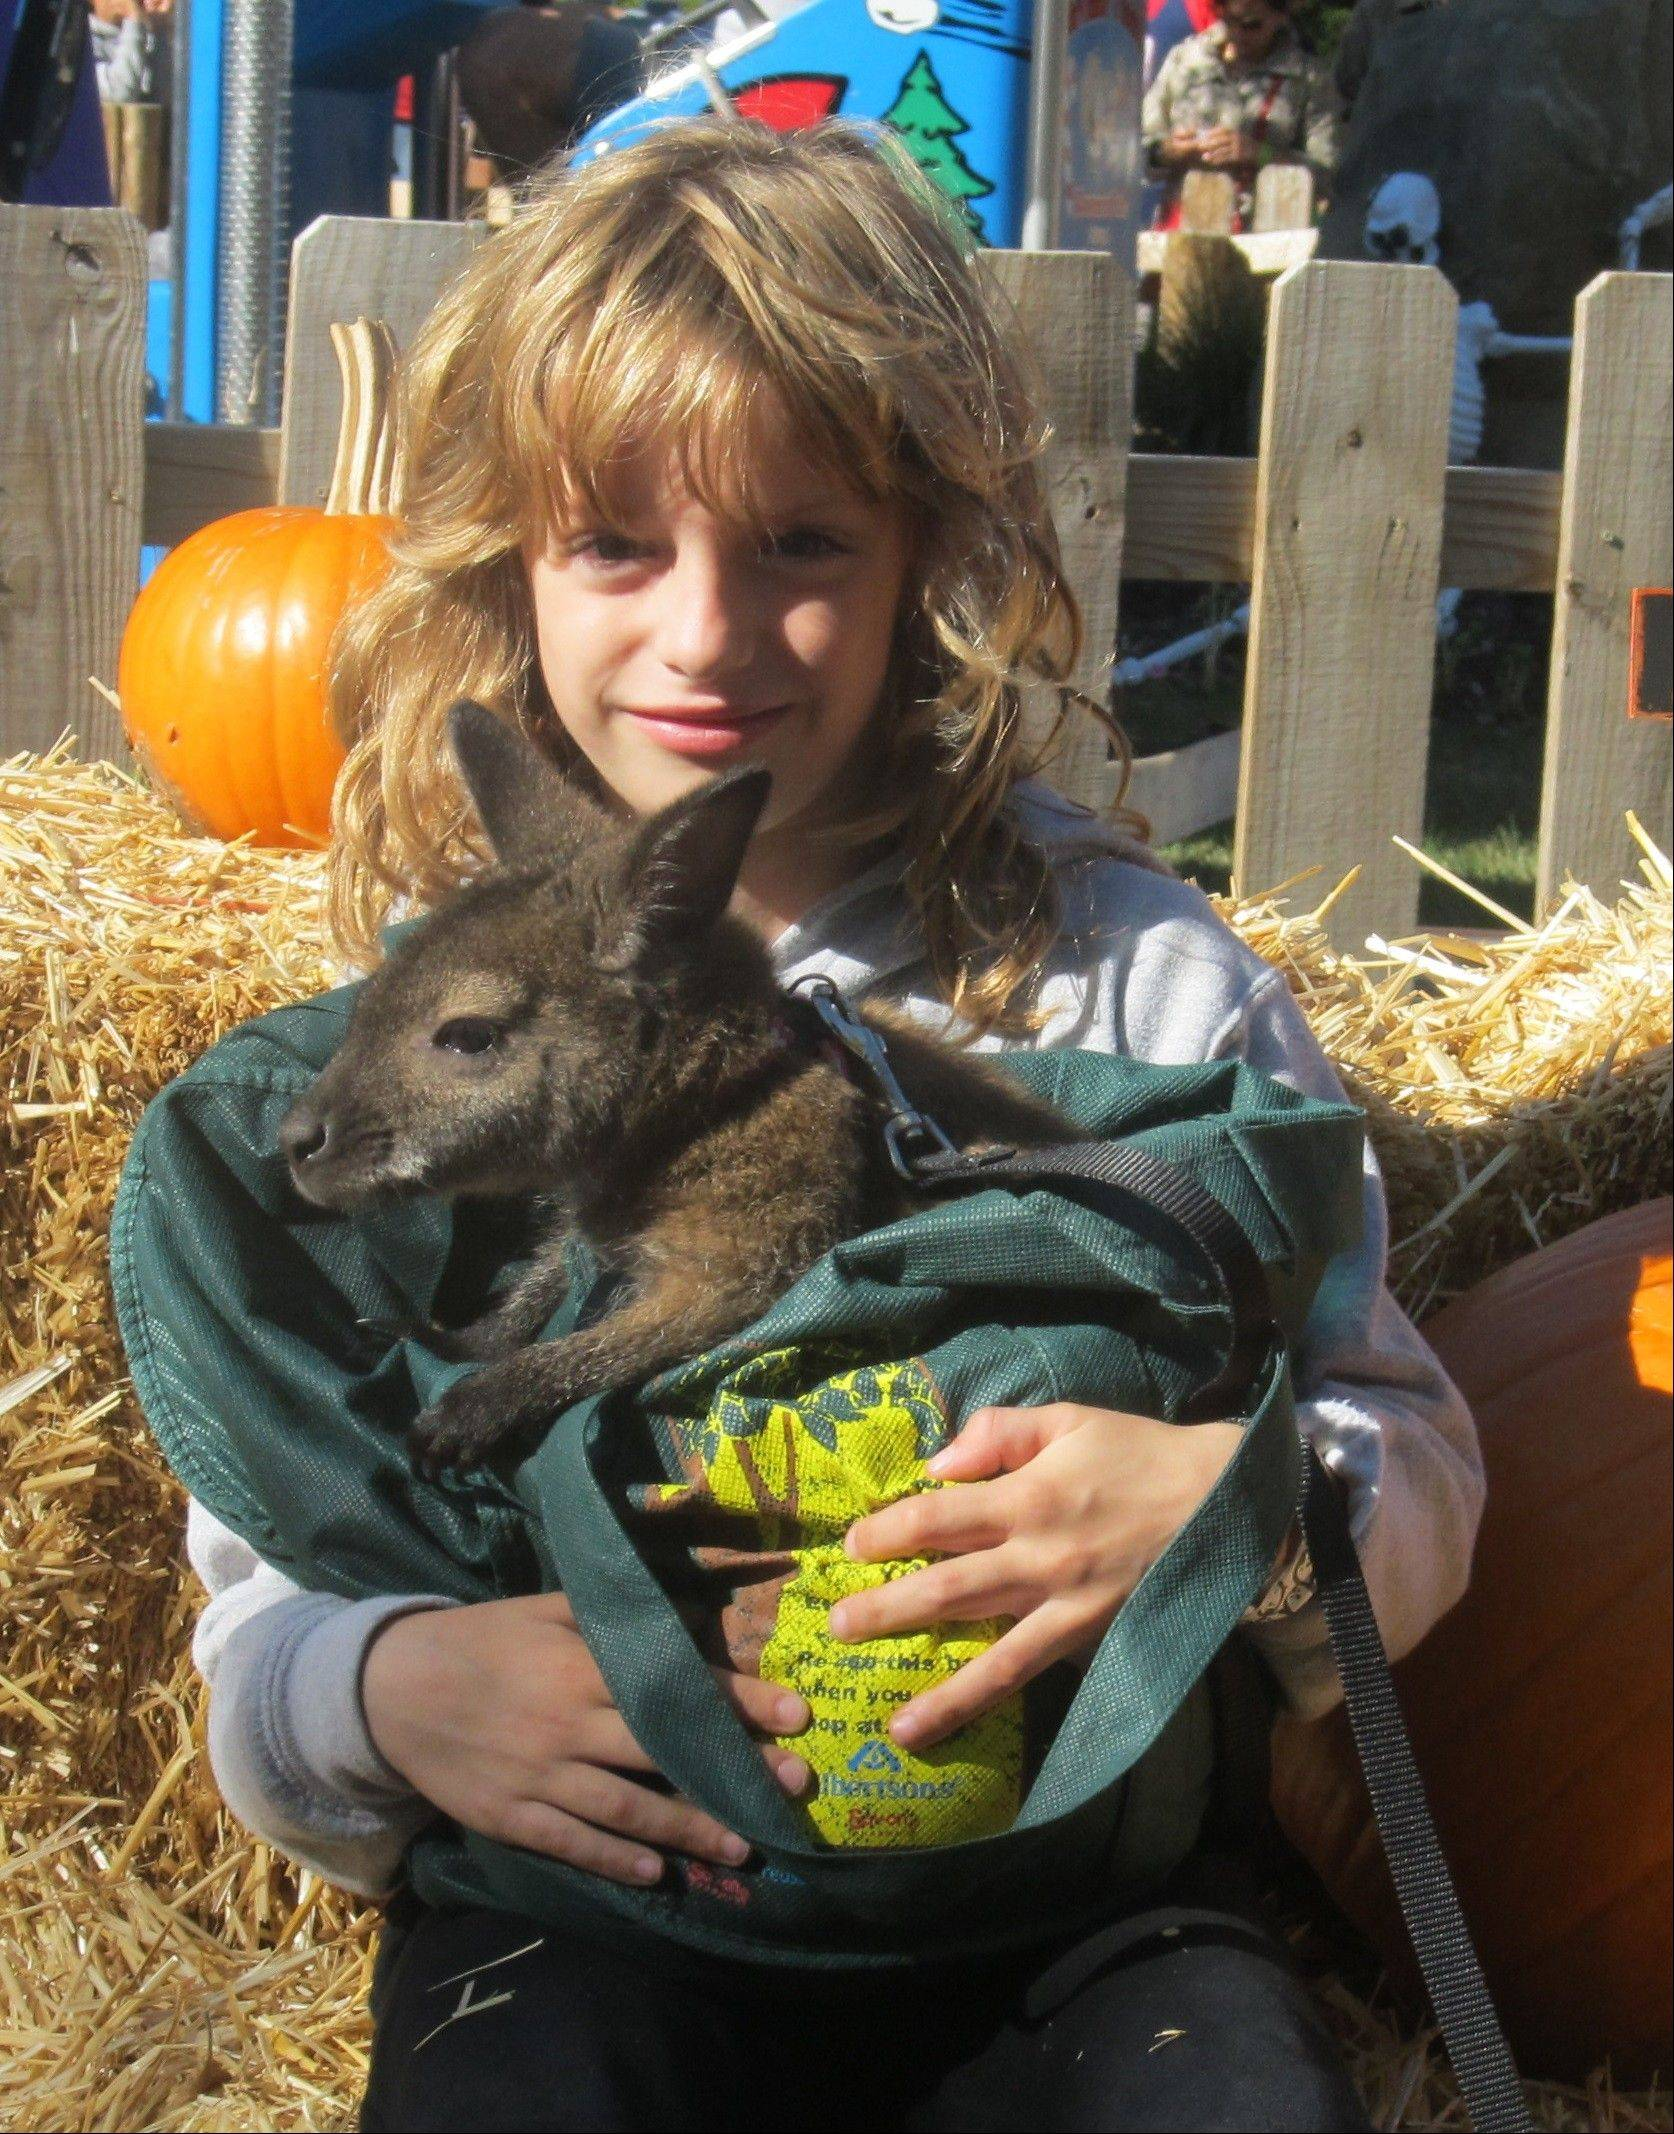 A petting zoo is one of the attractions at Harvest Fest Days at Santa's Village in East Dundee.